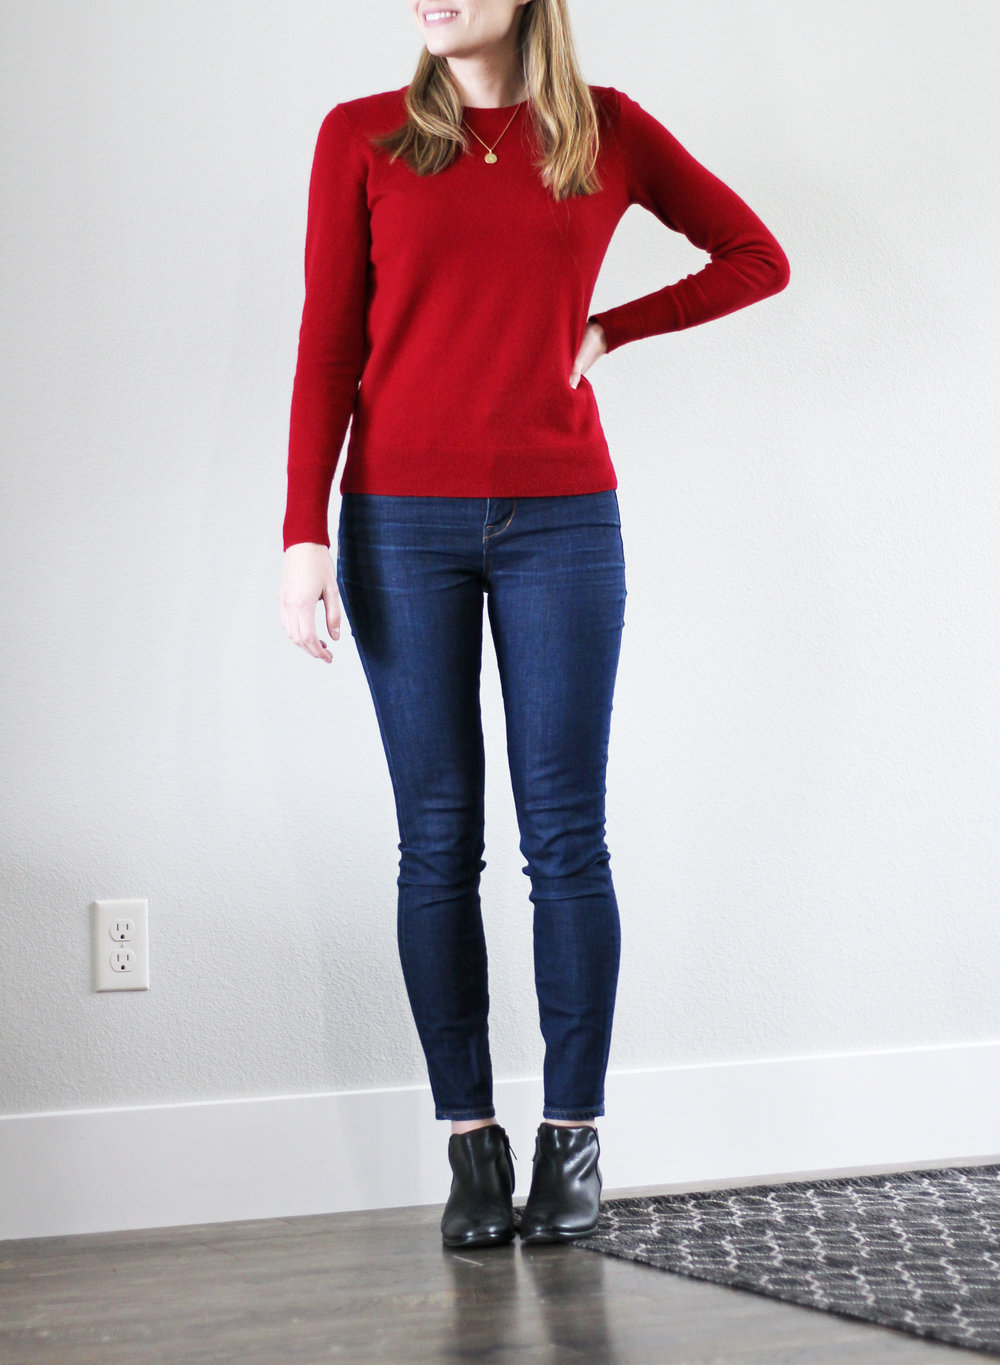 Red cashmere sweater outfit with high-rise skinny jeans and black ankles boots — Cotton Cashmere Cat Hair